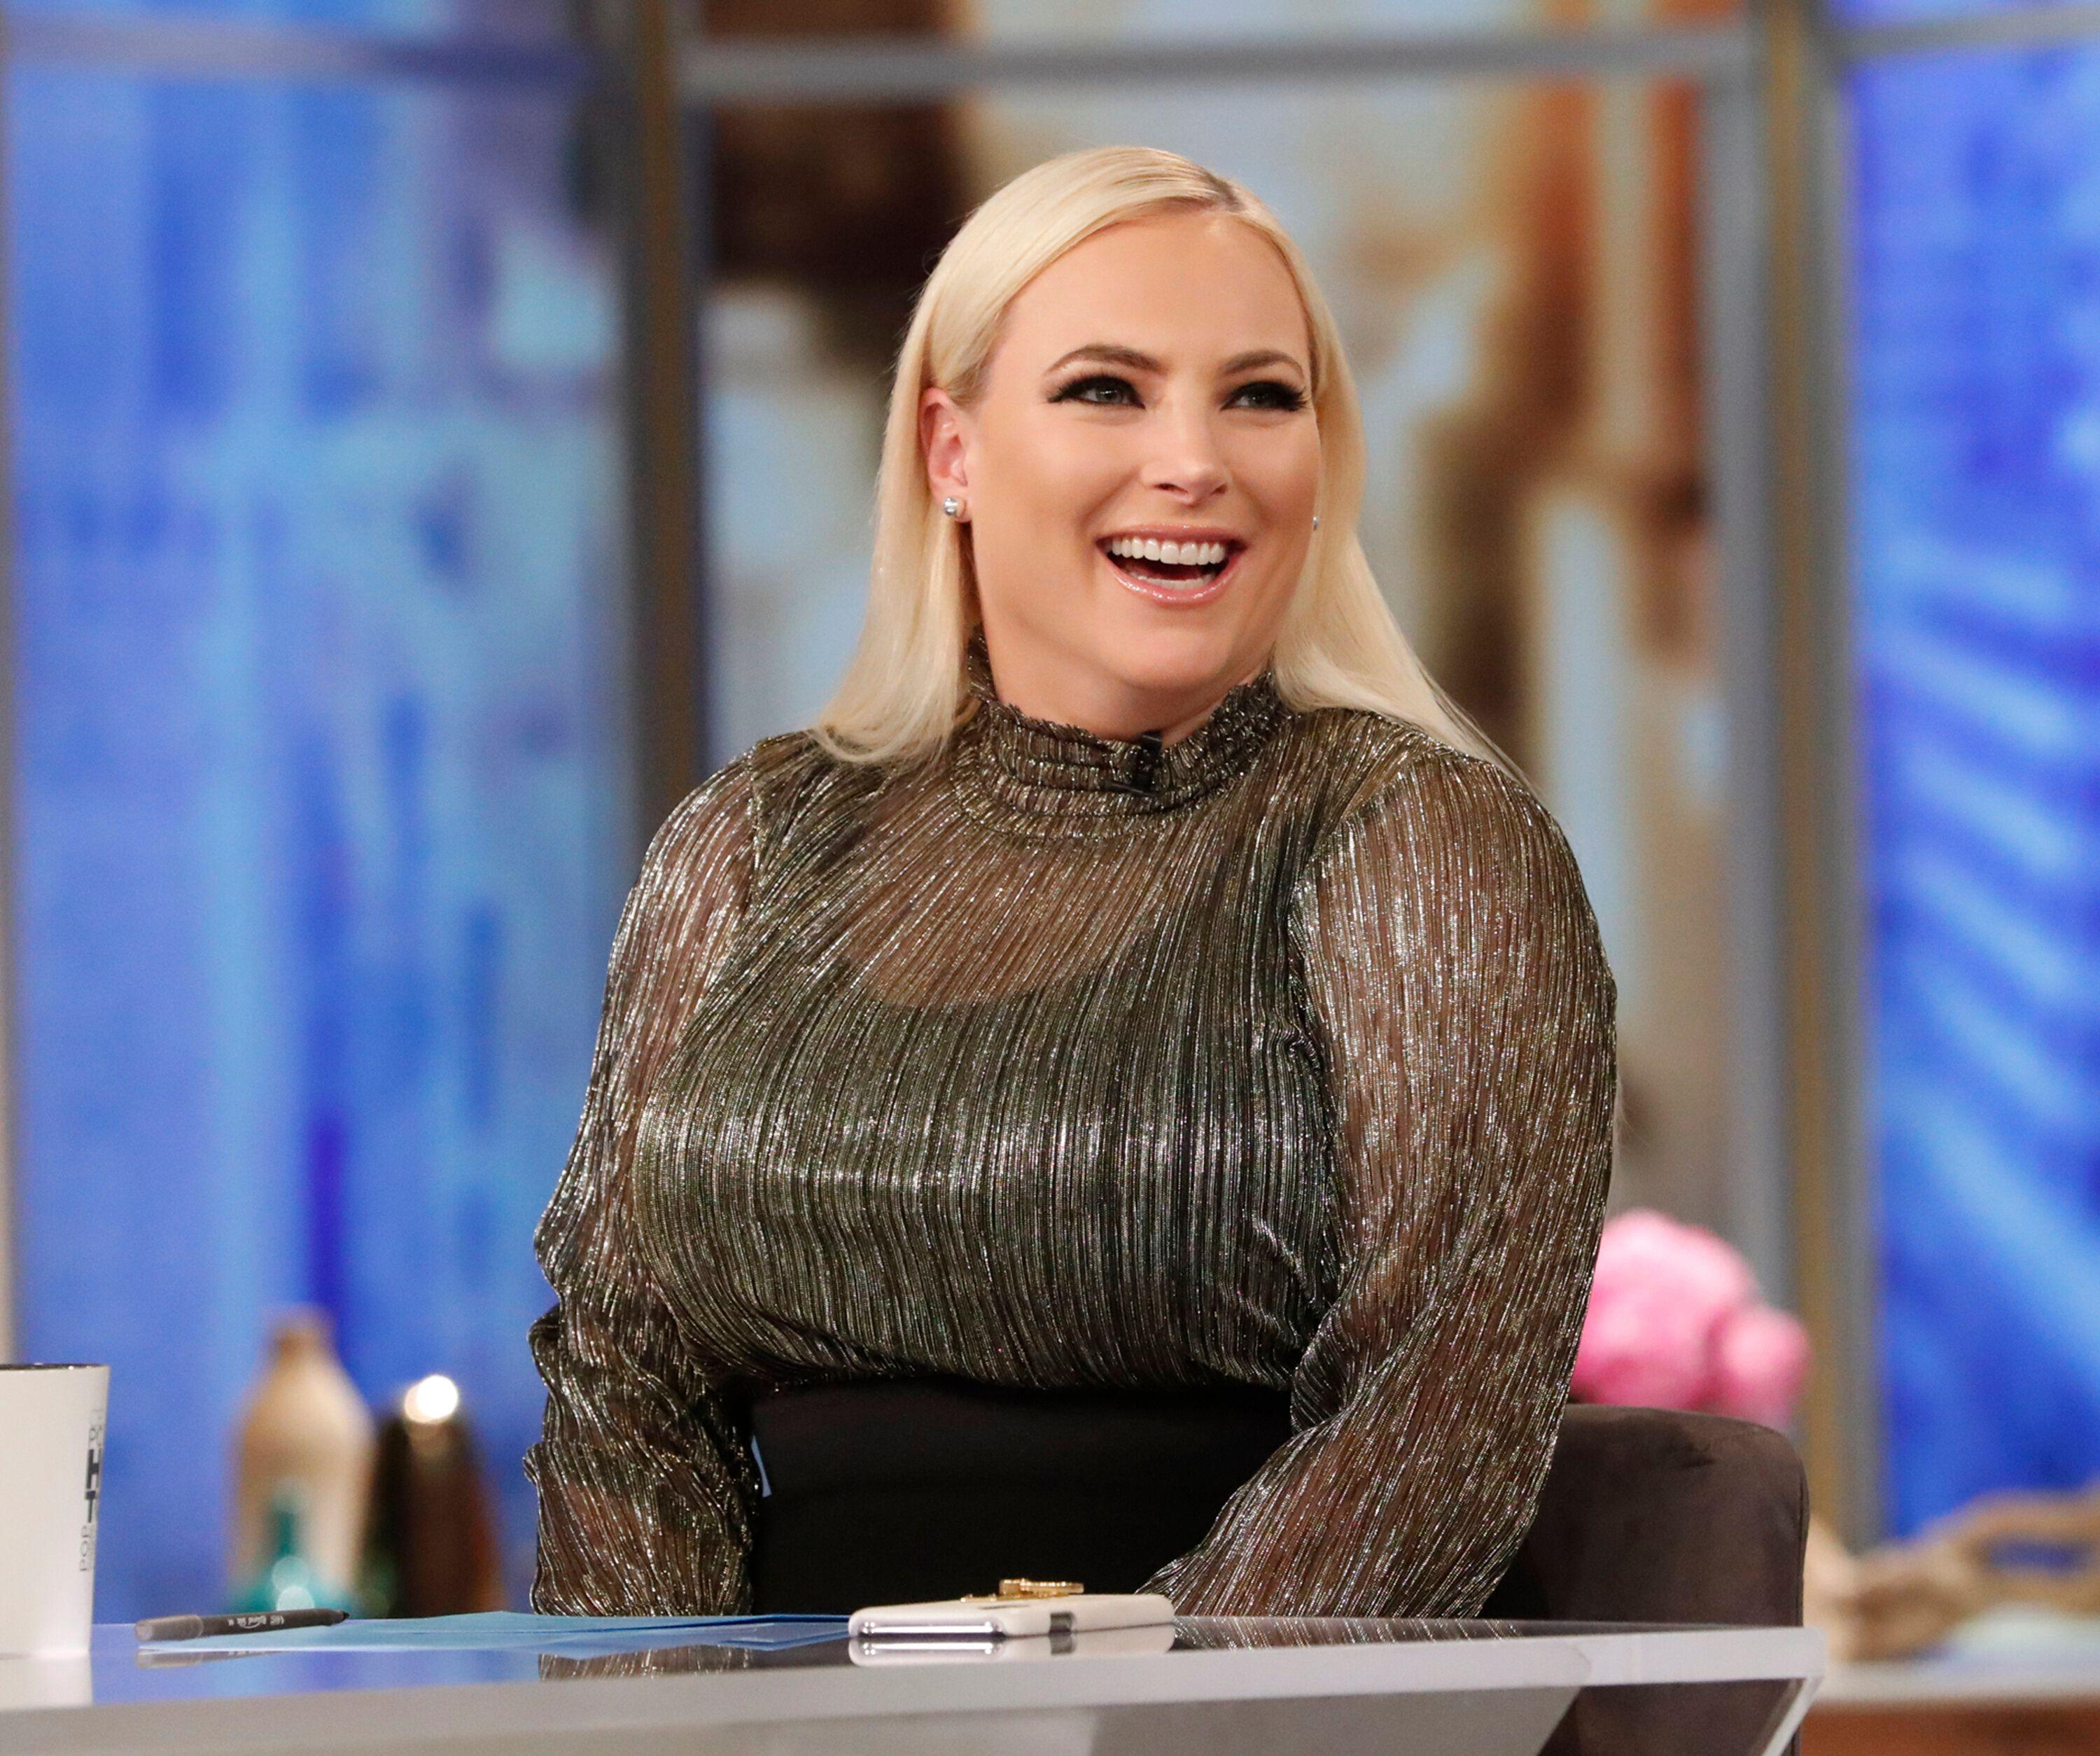 Meghan Mccain Tank Top Pick: Meghan McCain Slams 'hysterical' Treatment Of Women